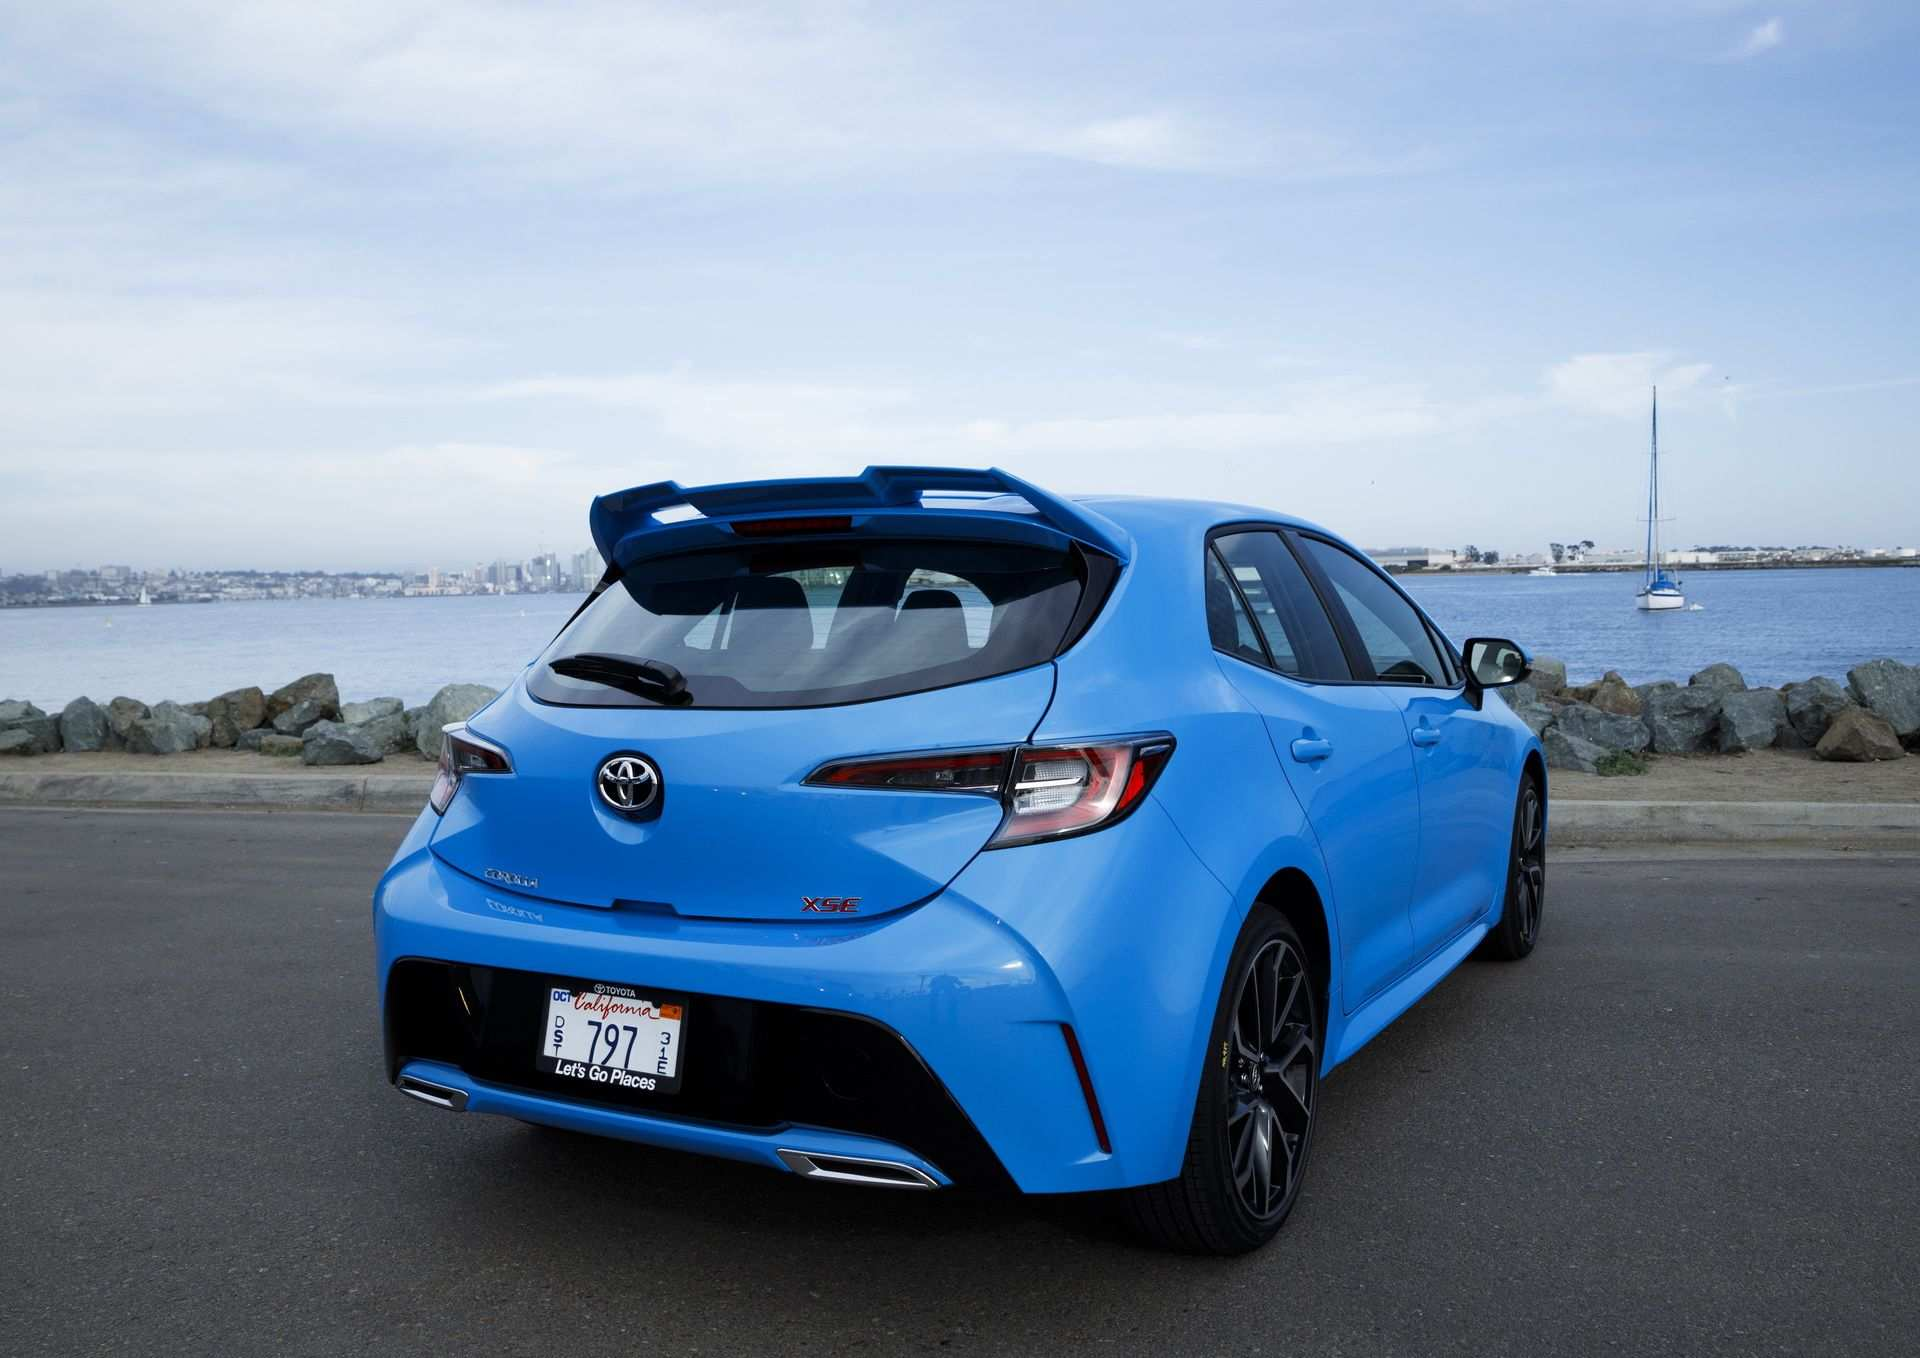 62 The Best 2020 Toyota Auris Overview